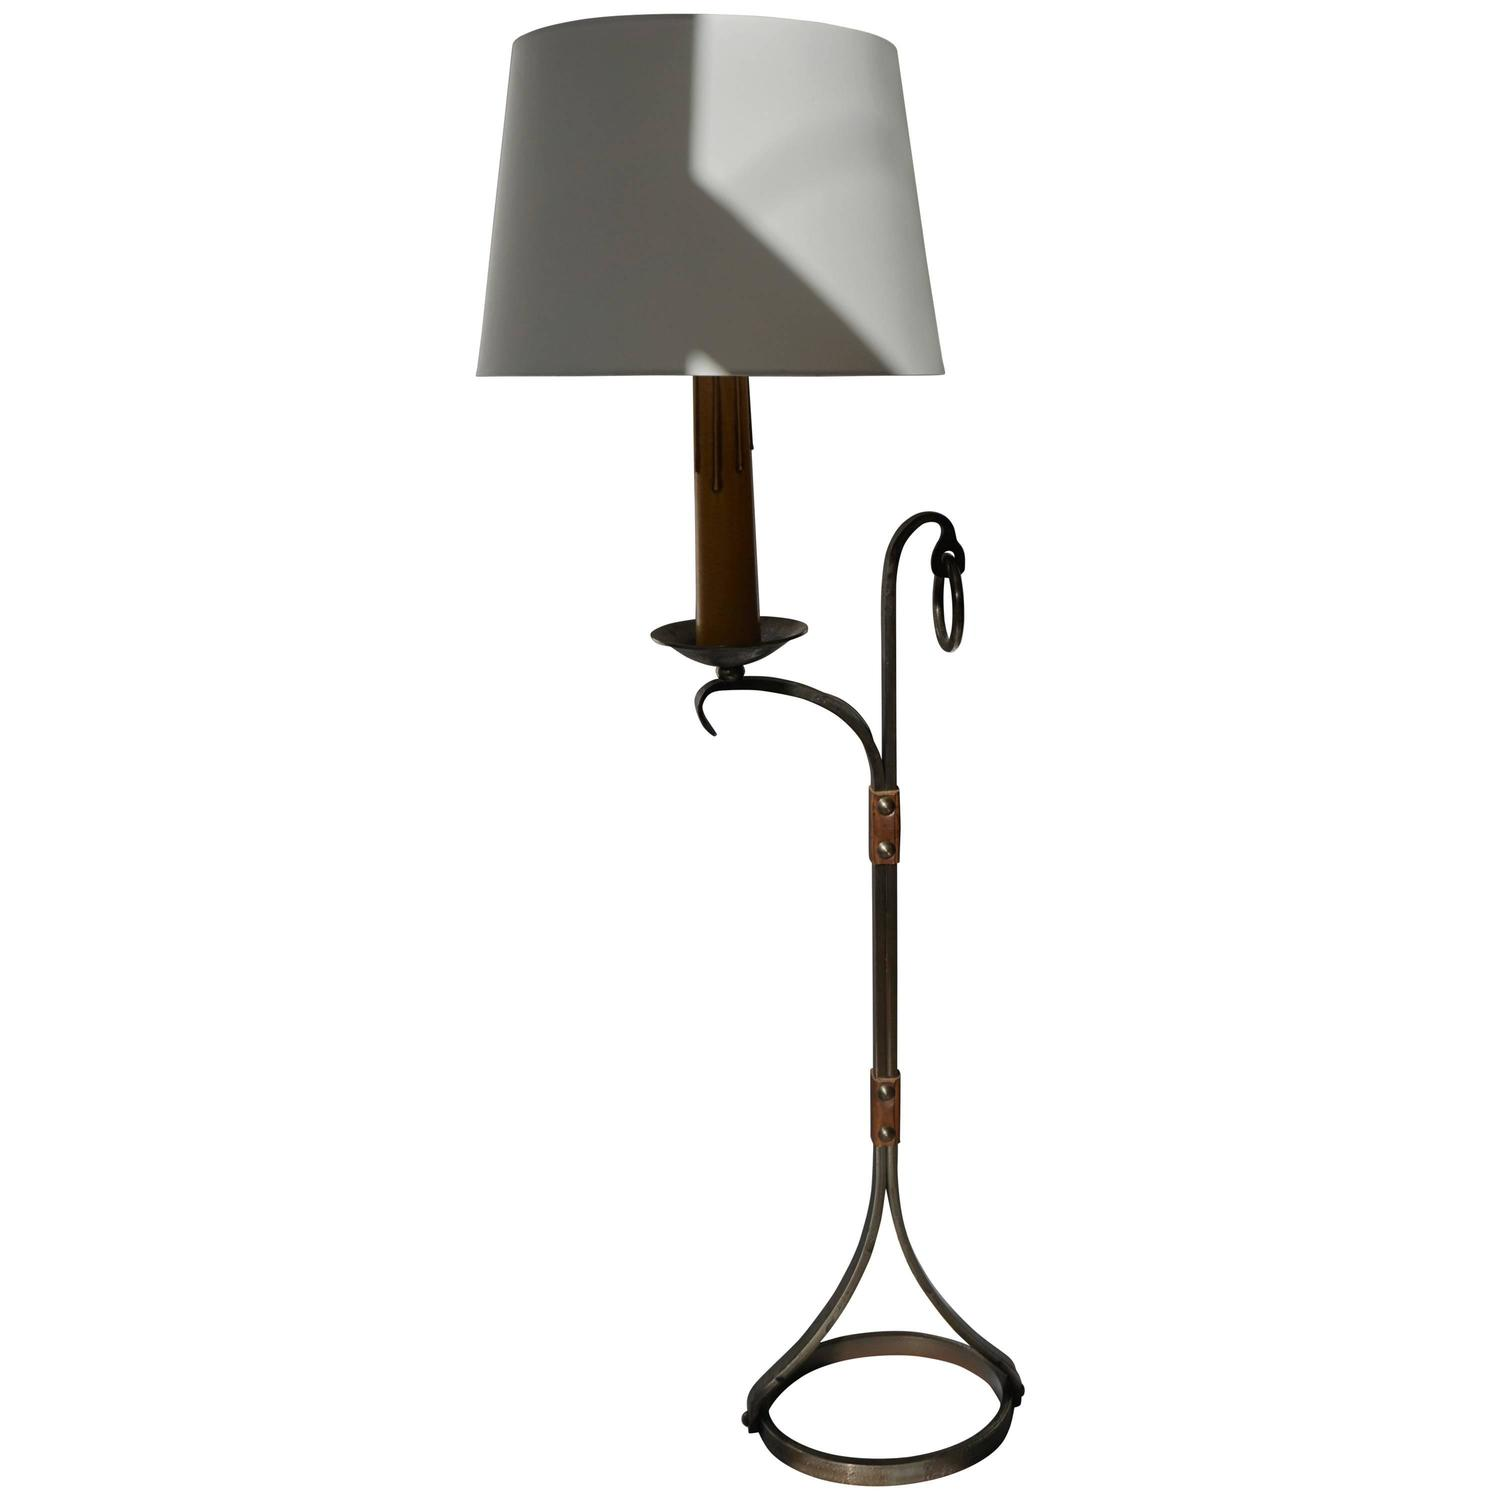 wrought iron floor lamp for sale at 1stdibs. Black Bedroom Furniture Sets. Home Design Ideas